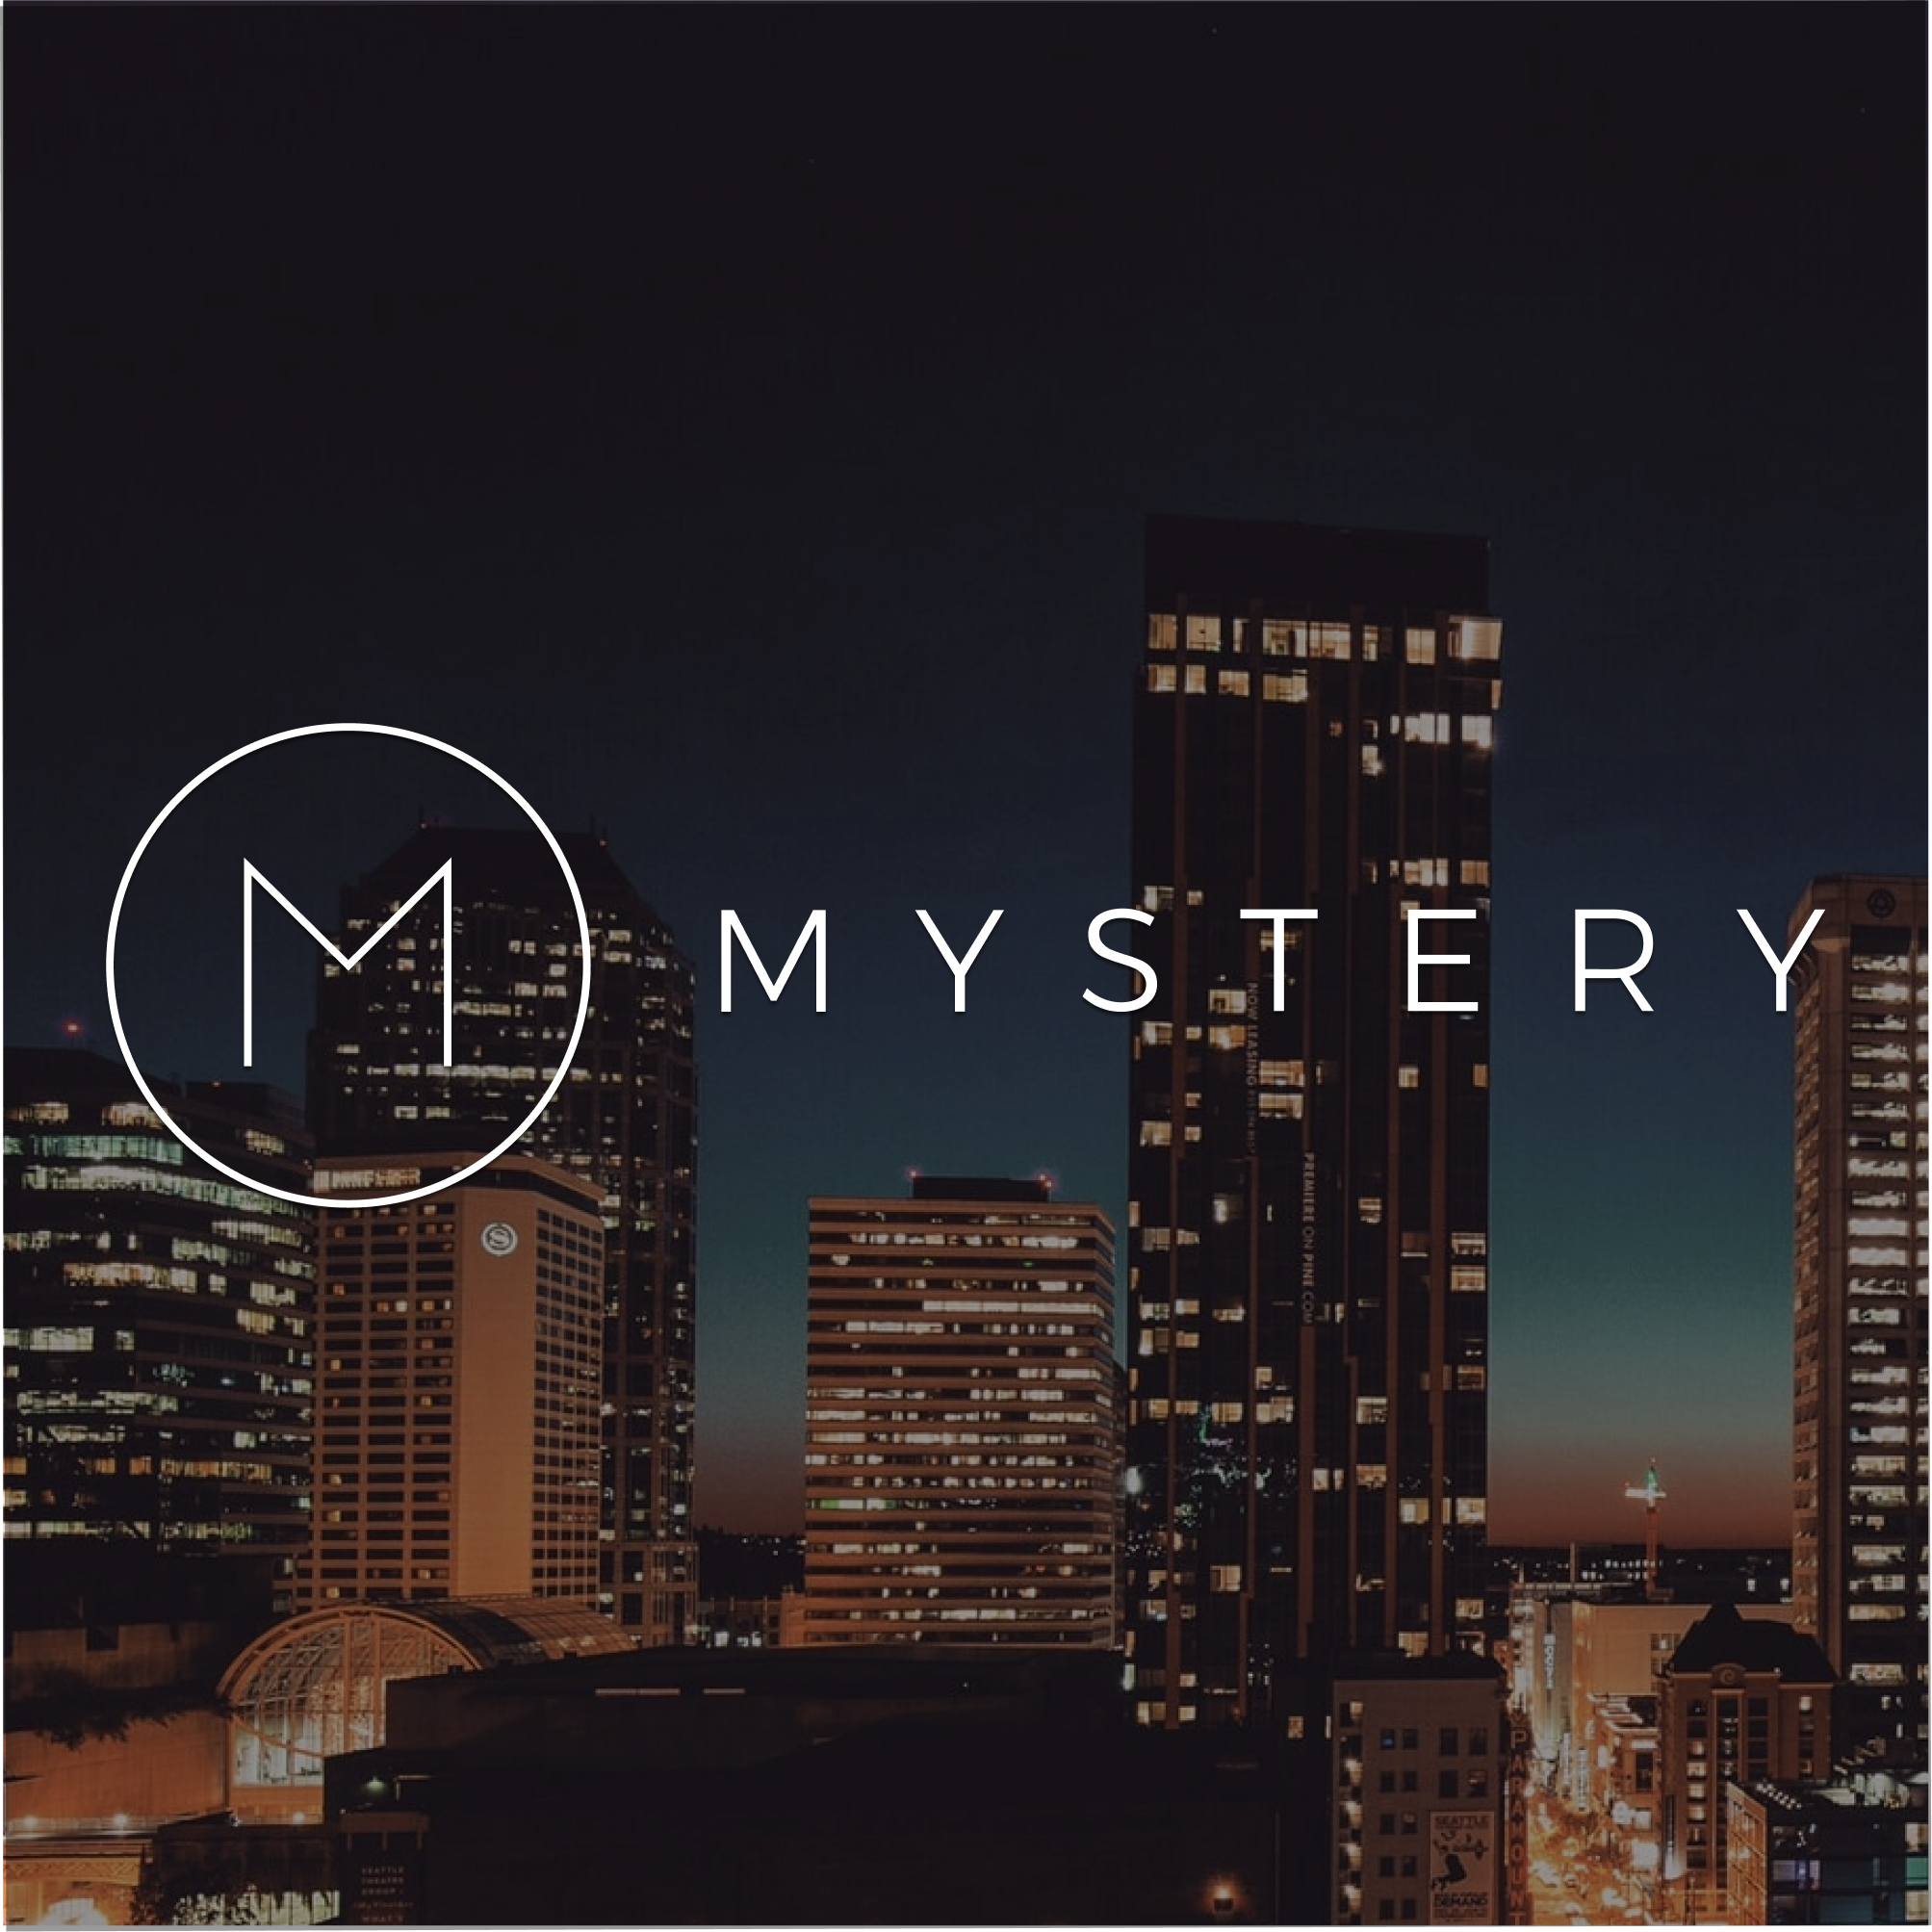 You can book your next date night at TryMystery.com (Image: Mystery)